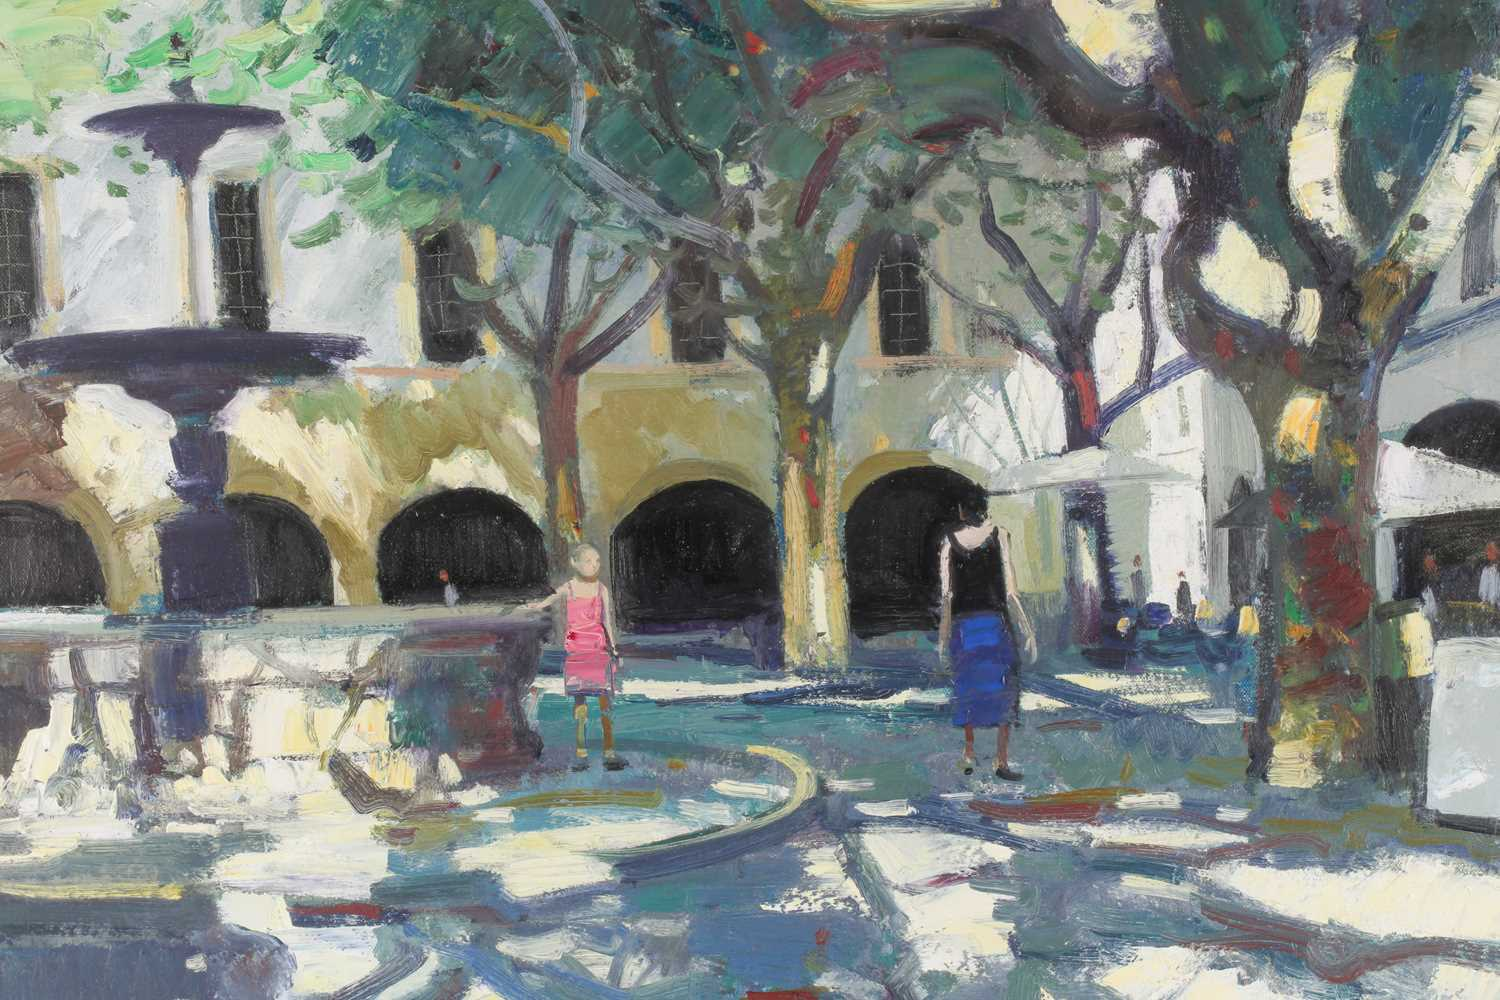 John Kingsley, RSW, PAI (Scottish), Late afternoon, Uzes, oil on canvas, signed lower left, 60 cm - Image 4 of 5